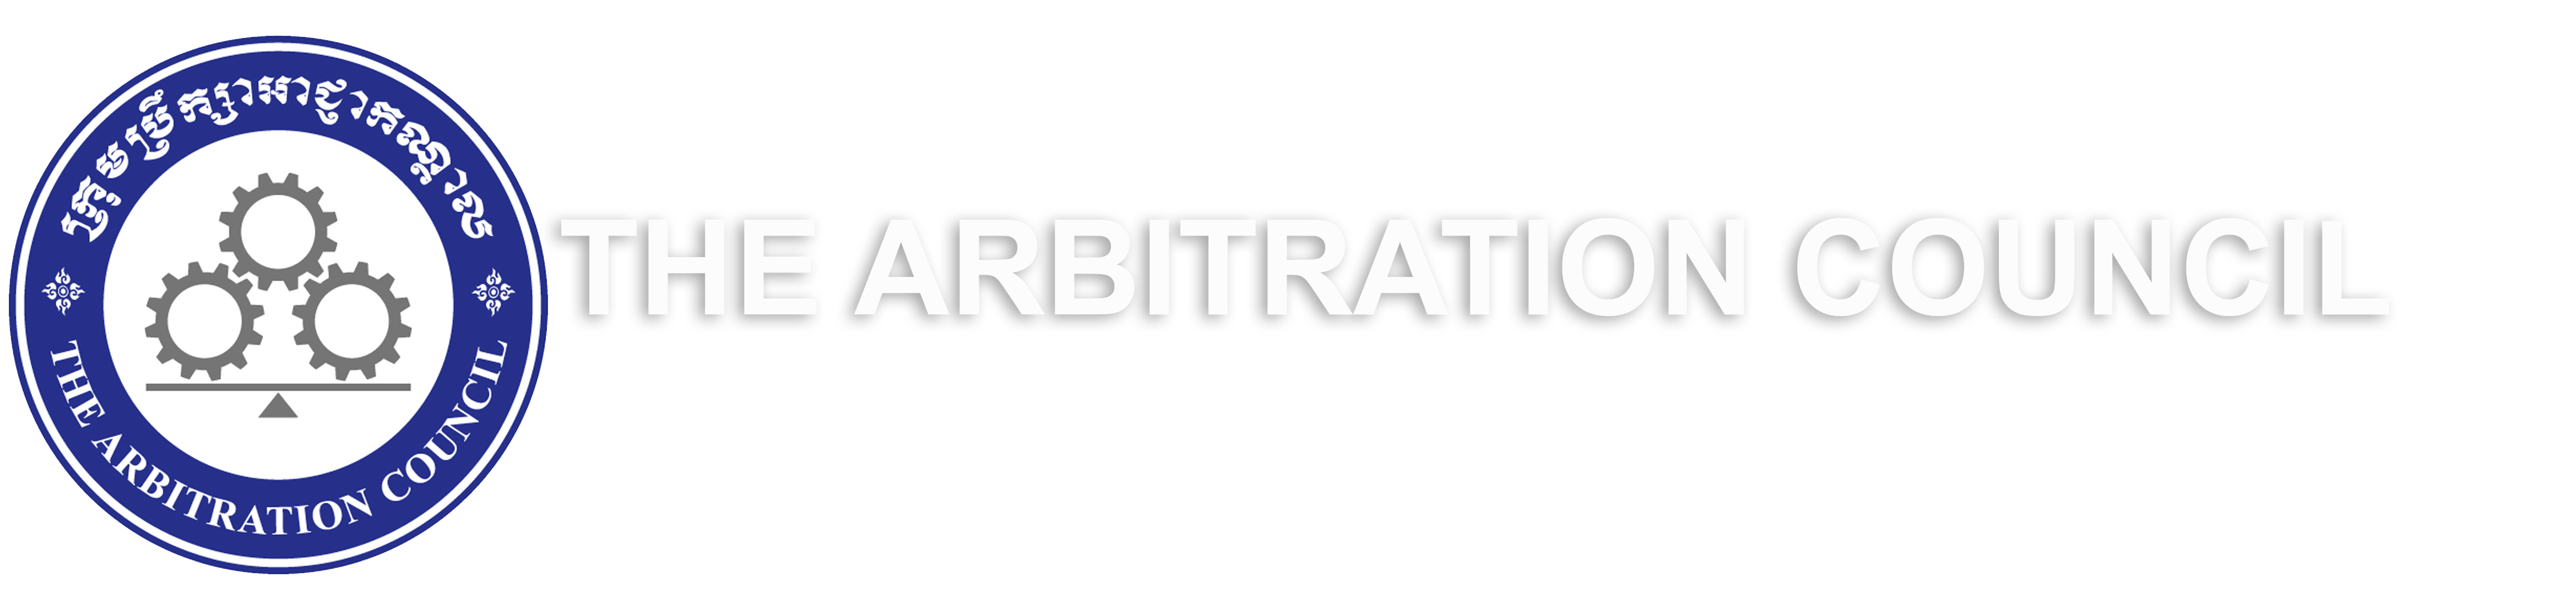 Welcome to The Arbitration Council